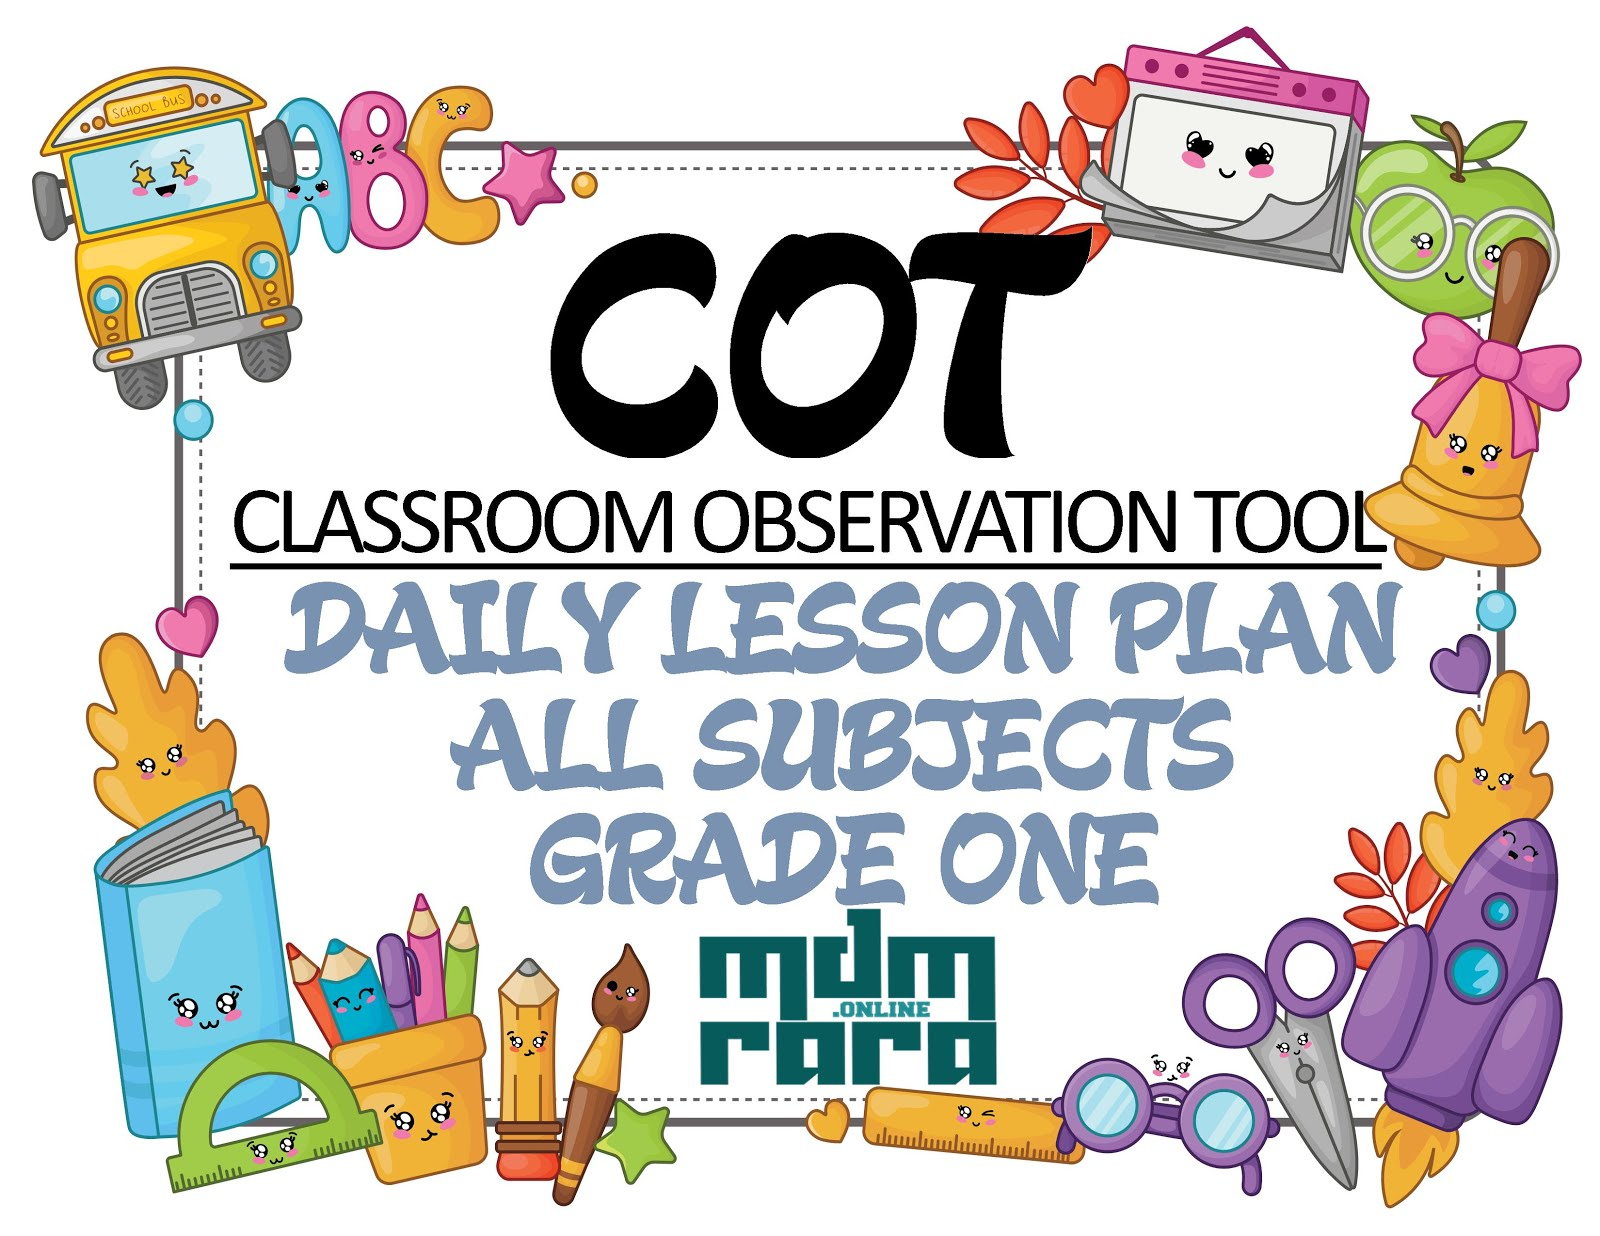 CLASSROOM OBSERVATION TOOL (COT) DAILY LESSON PLAN (DLP) GRADE ONE - mdmrara [ 1236 x 1600 Pixel ]